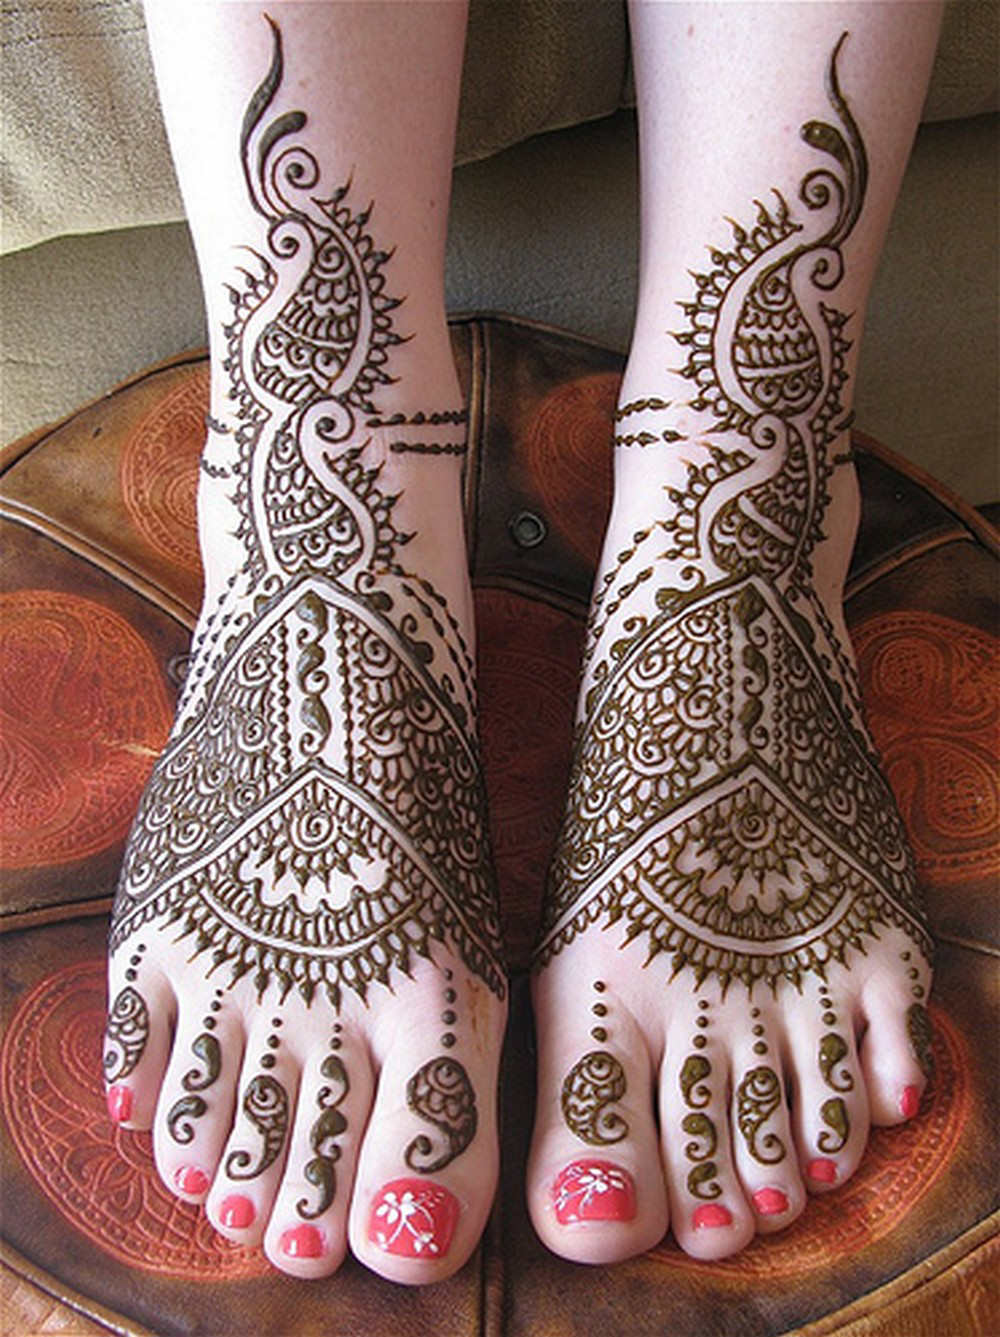 Feet Mehndi For Eid : Feet mehndi designs for eid all latest henna patterns